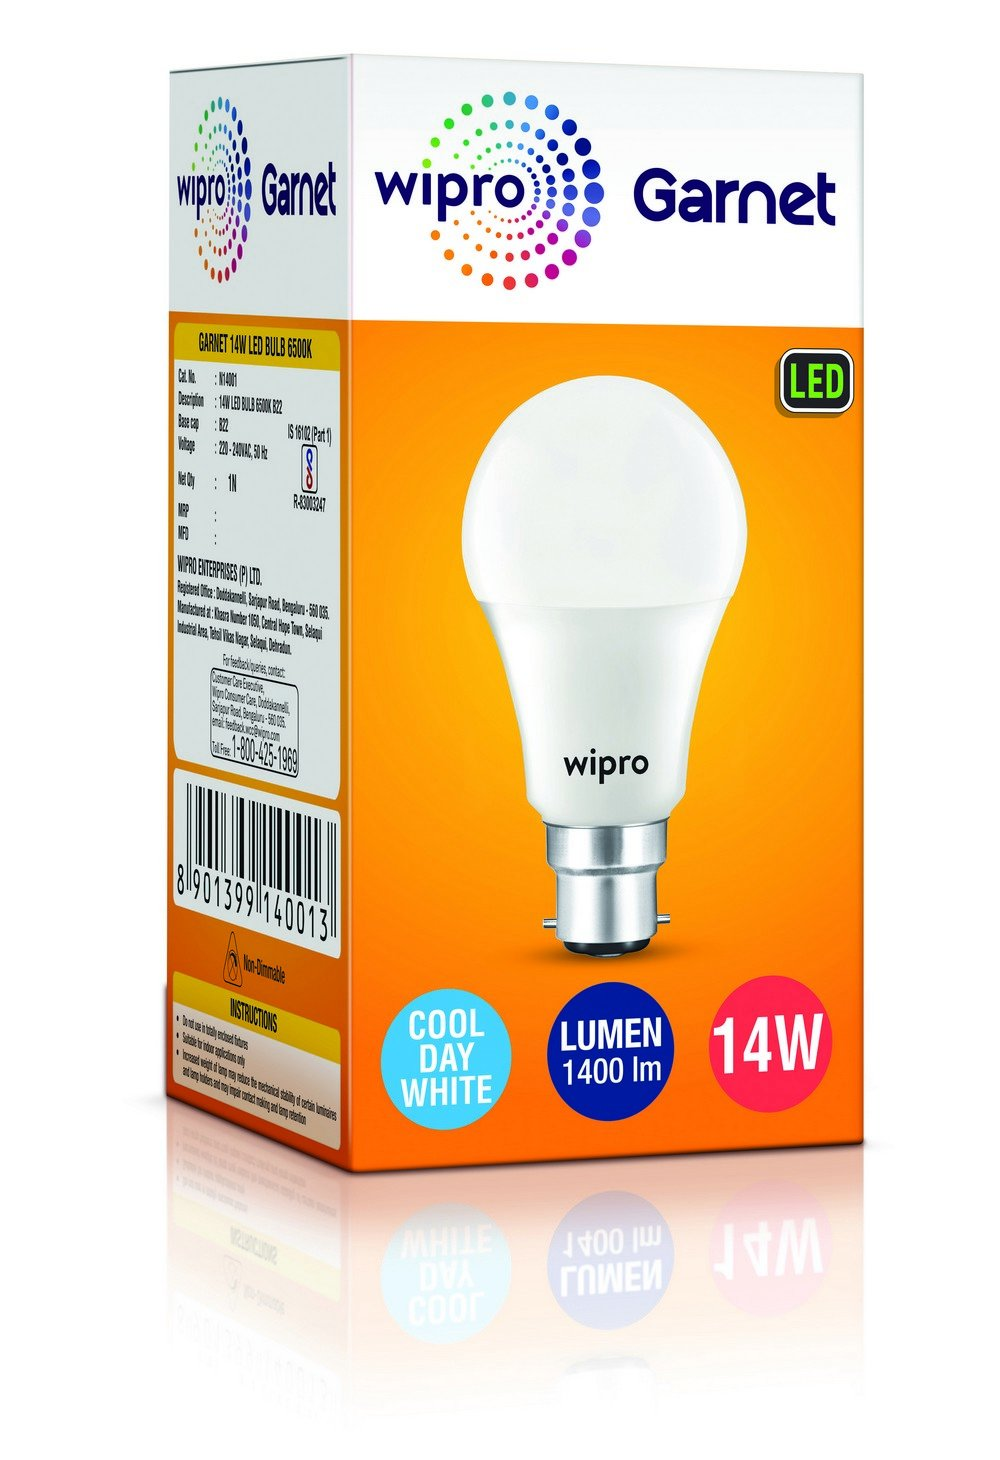 Buy Wipro Garnet 14 Watt Led Bulb Cool Day Light Online At Low 18 W Cfl Circuit Diagram Prices In India